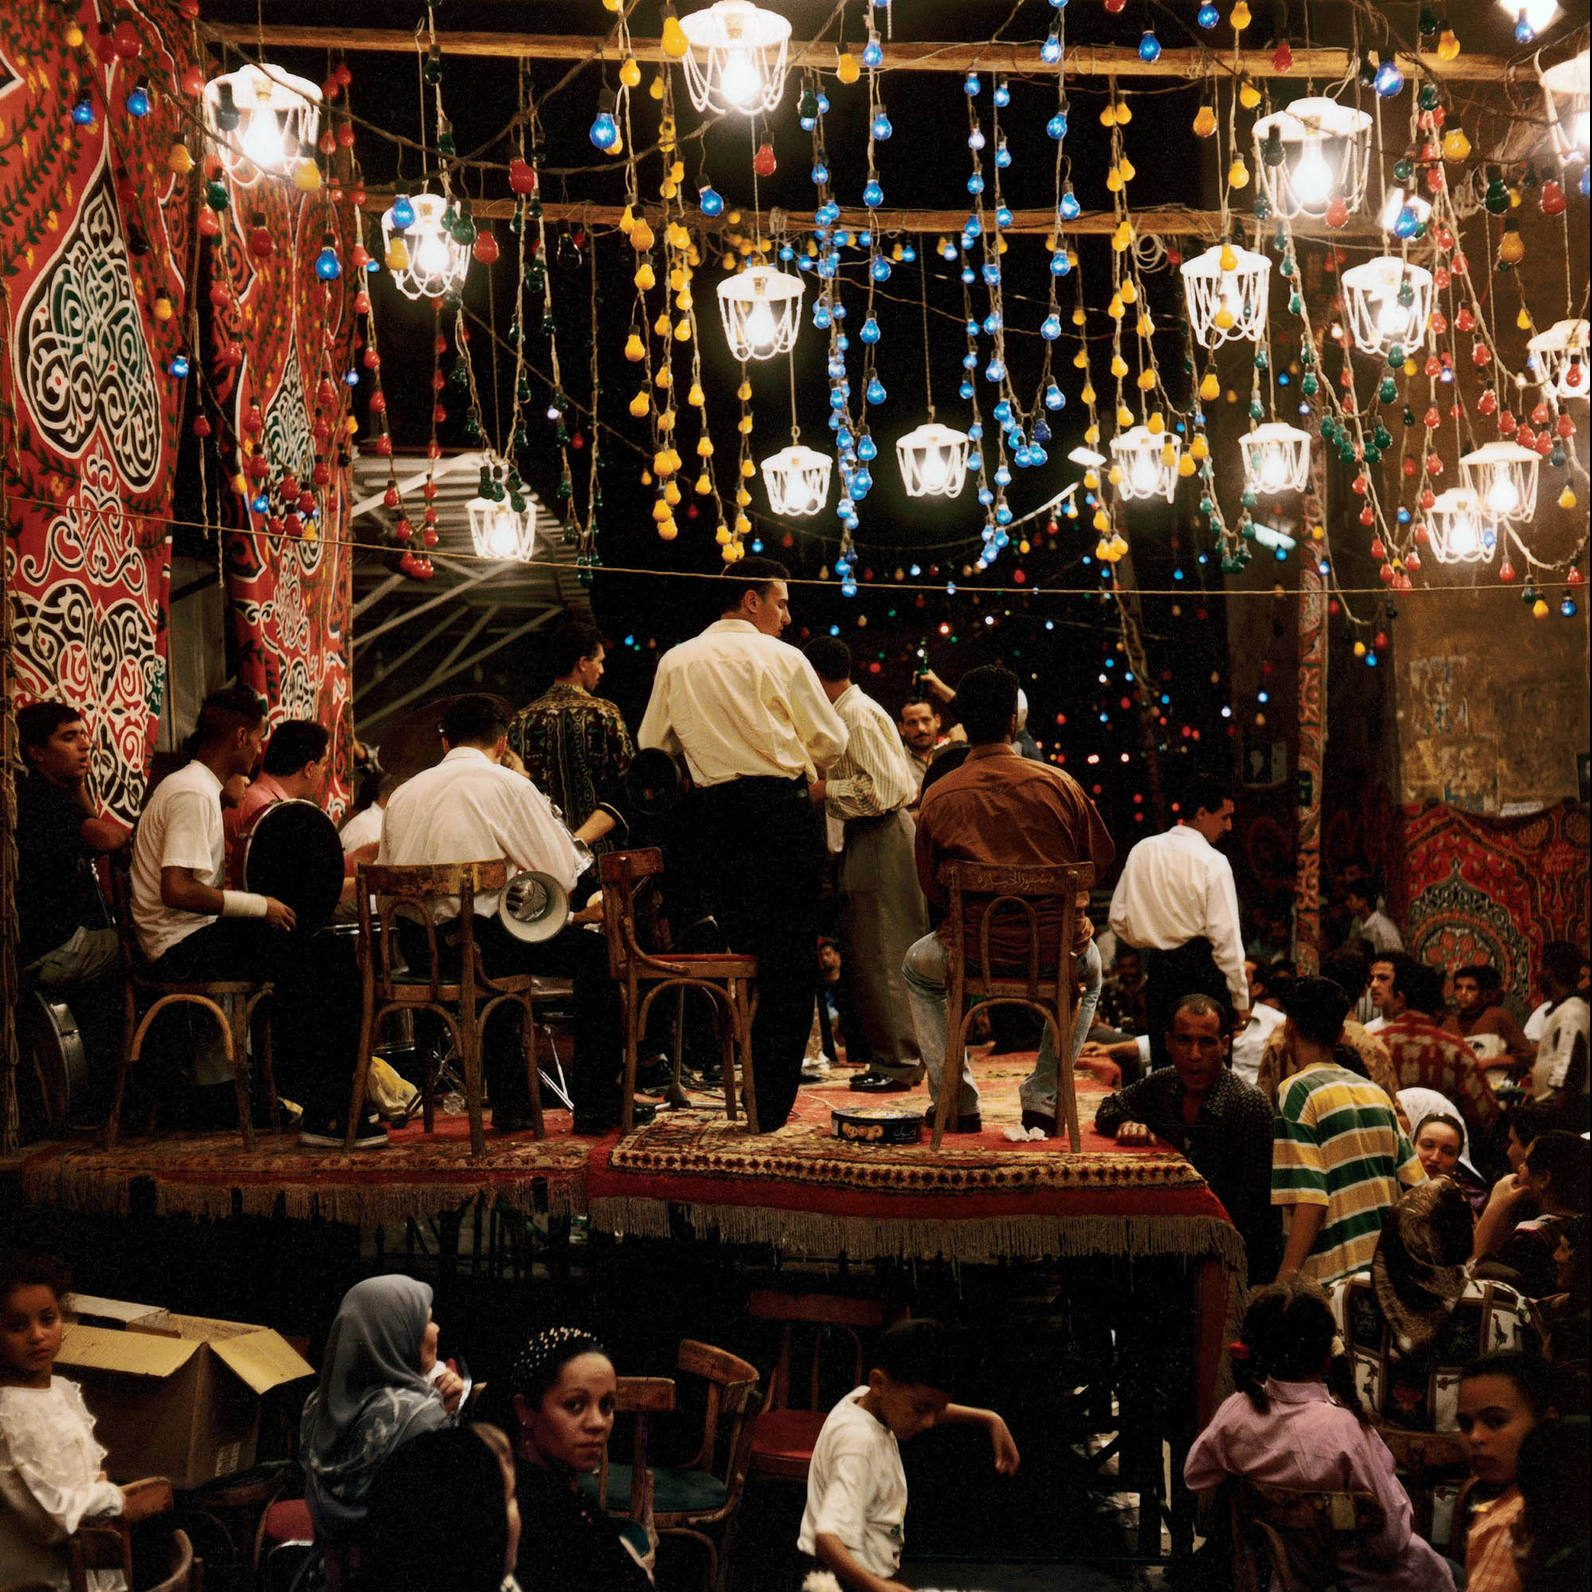 Egypt, Cairo, 1999 - Musicians photograph by Denis Dailleux